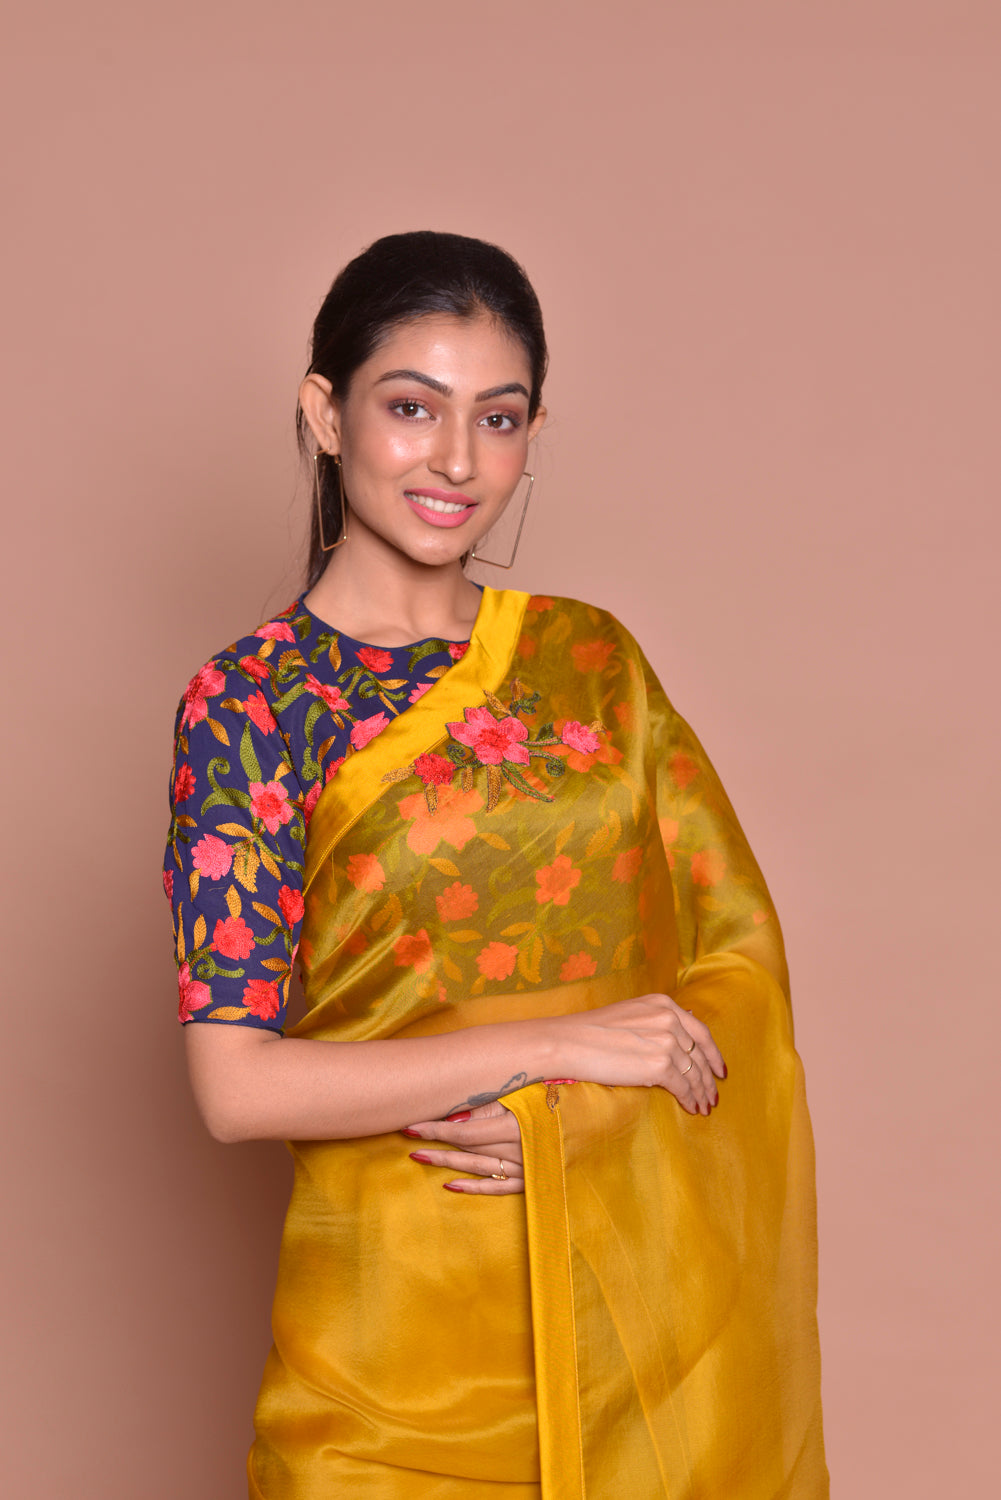 Buy beautiful mustard embroidered organza saree online in USA with blue floral saree blouse. Set ethnic fashion goals with exquisite silk sarees with blouse, Banarasi sarees, Kanchipuram saris from Pure Elegance Indian luxury clothing store in USA.-closeup